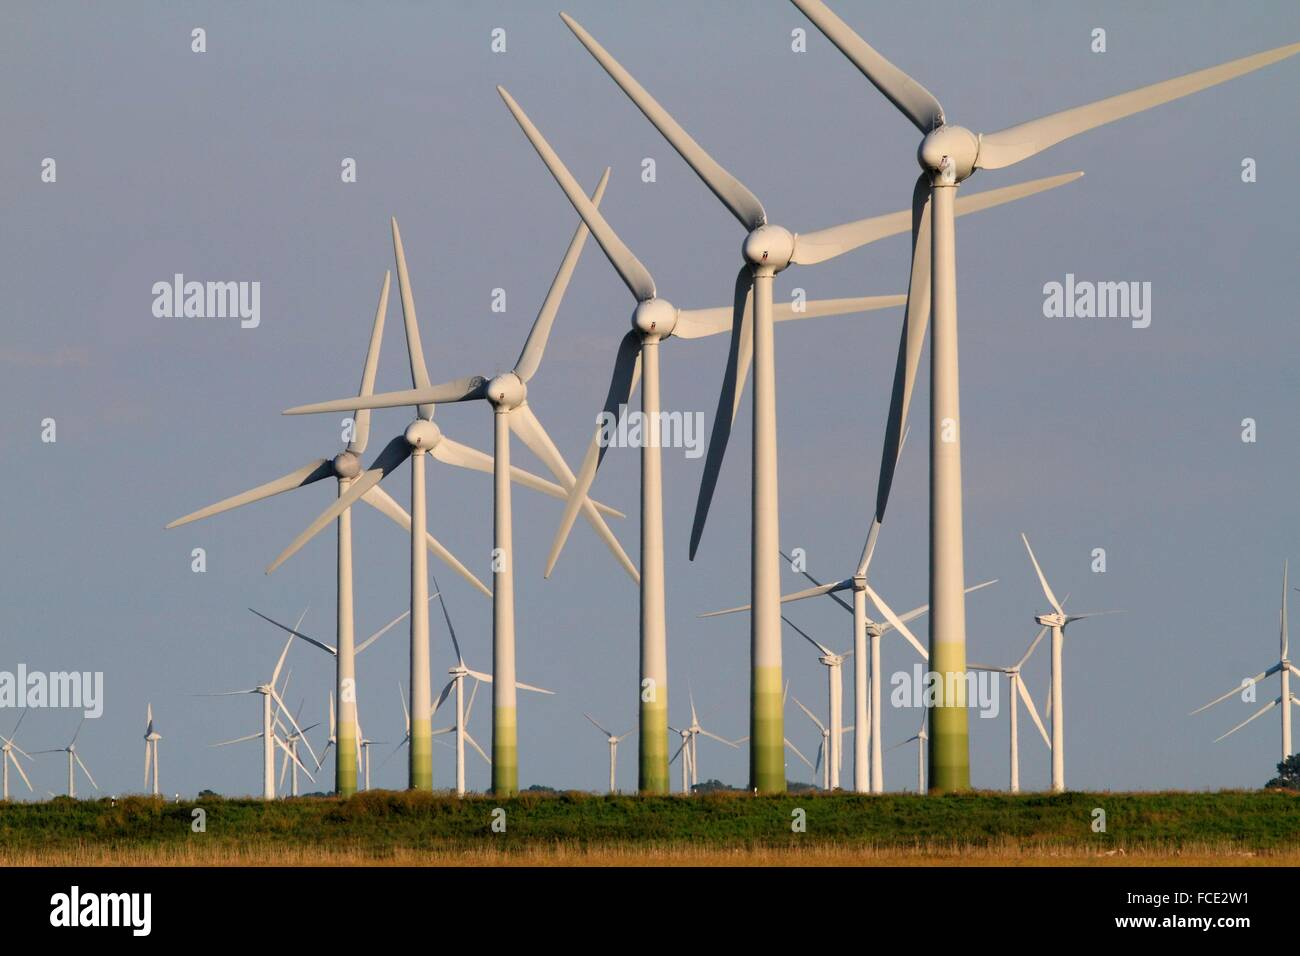 Germany, power wind mill - Stock Image